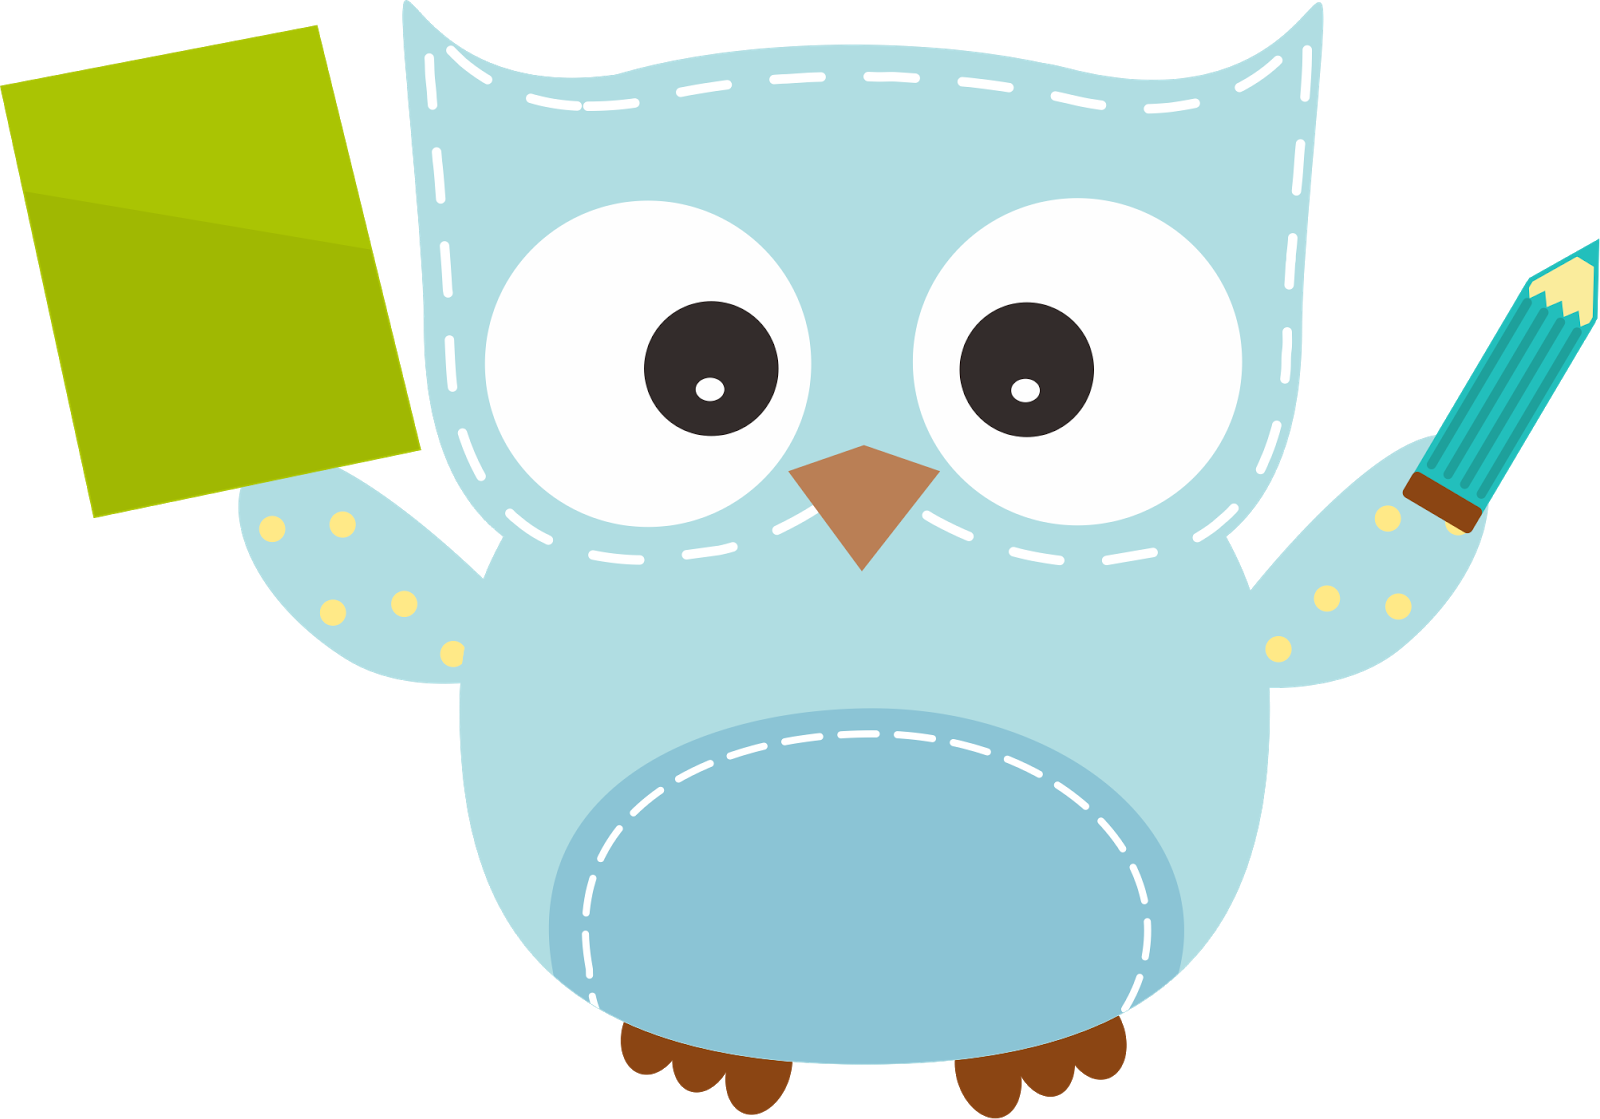 Cute math book clipart images. Owl kid png manualidades